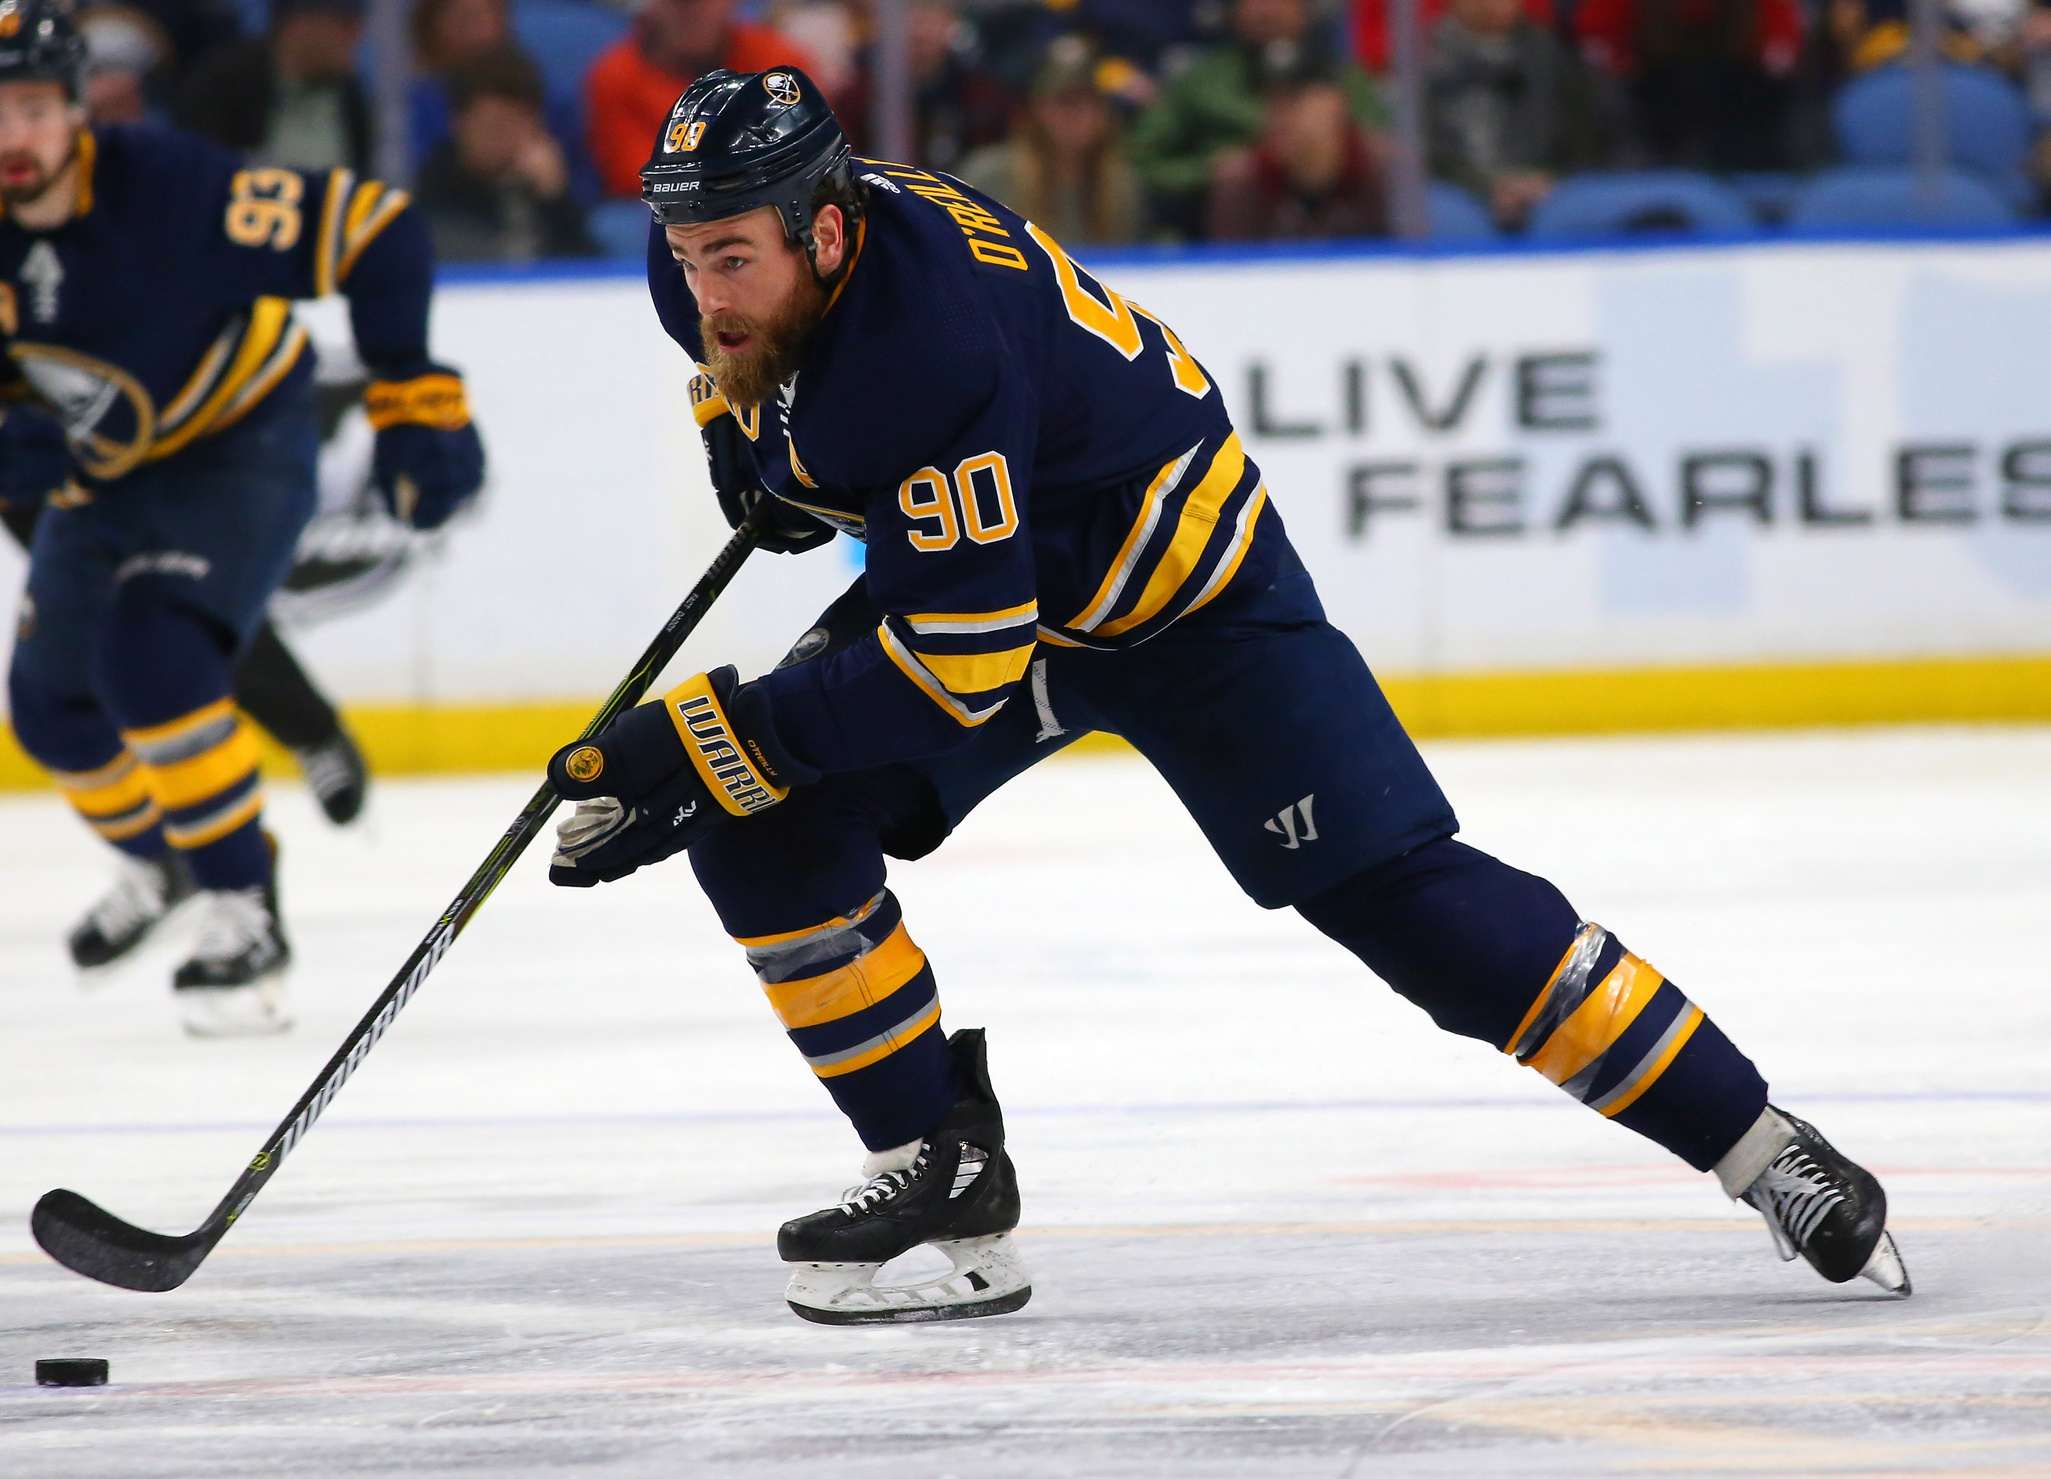 The Blues already have big plans for Ryan O'Reilly